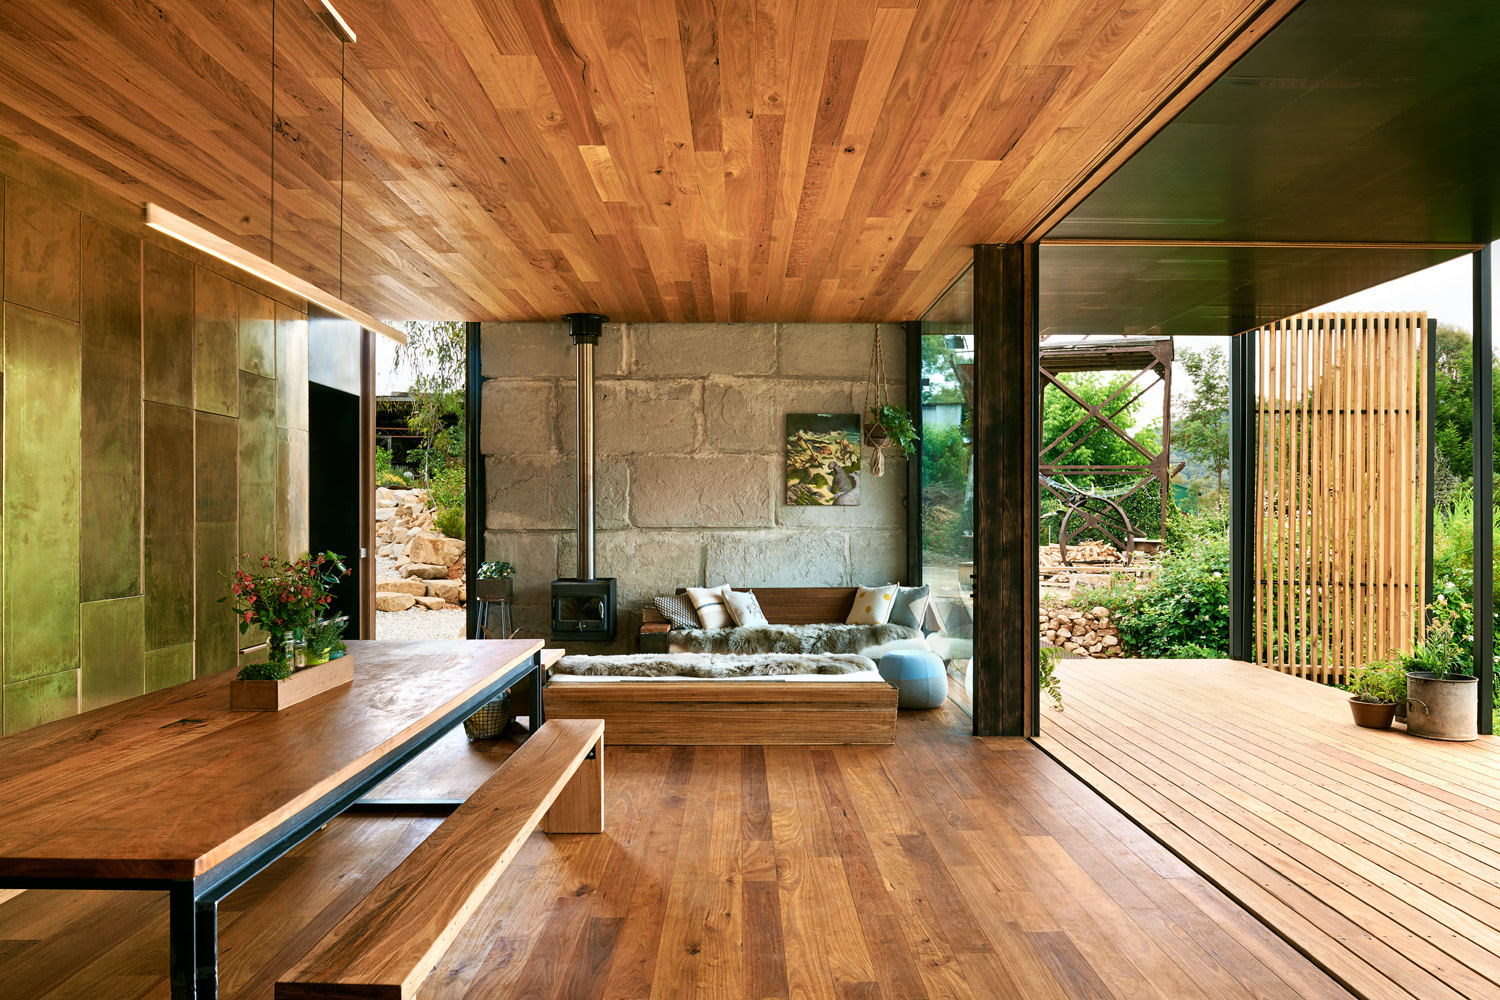 Grand Designs Australia: Yackandandah Sawmill House